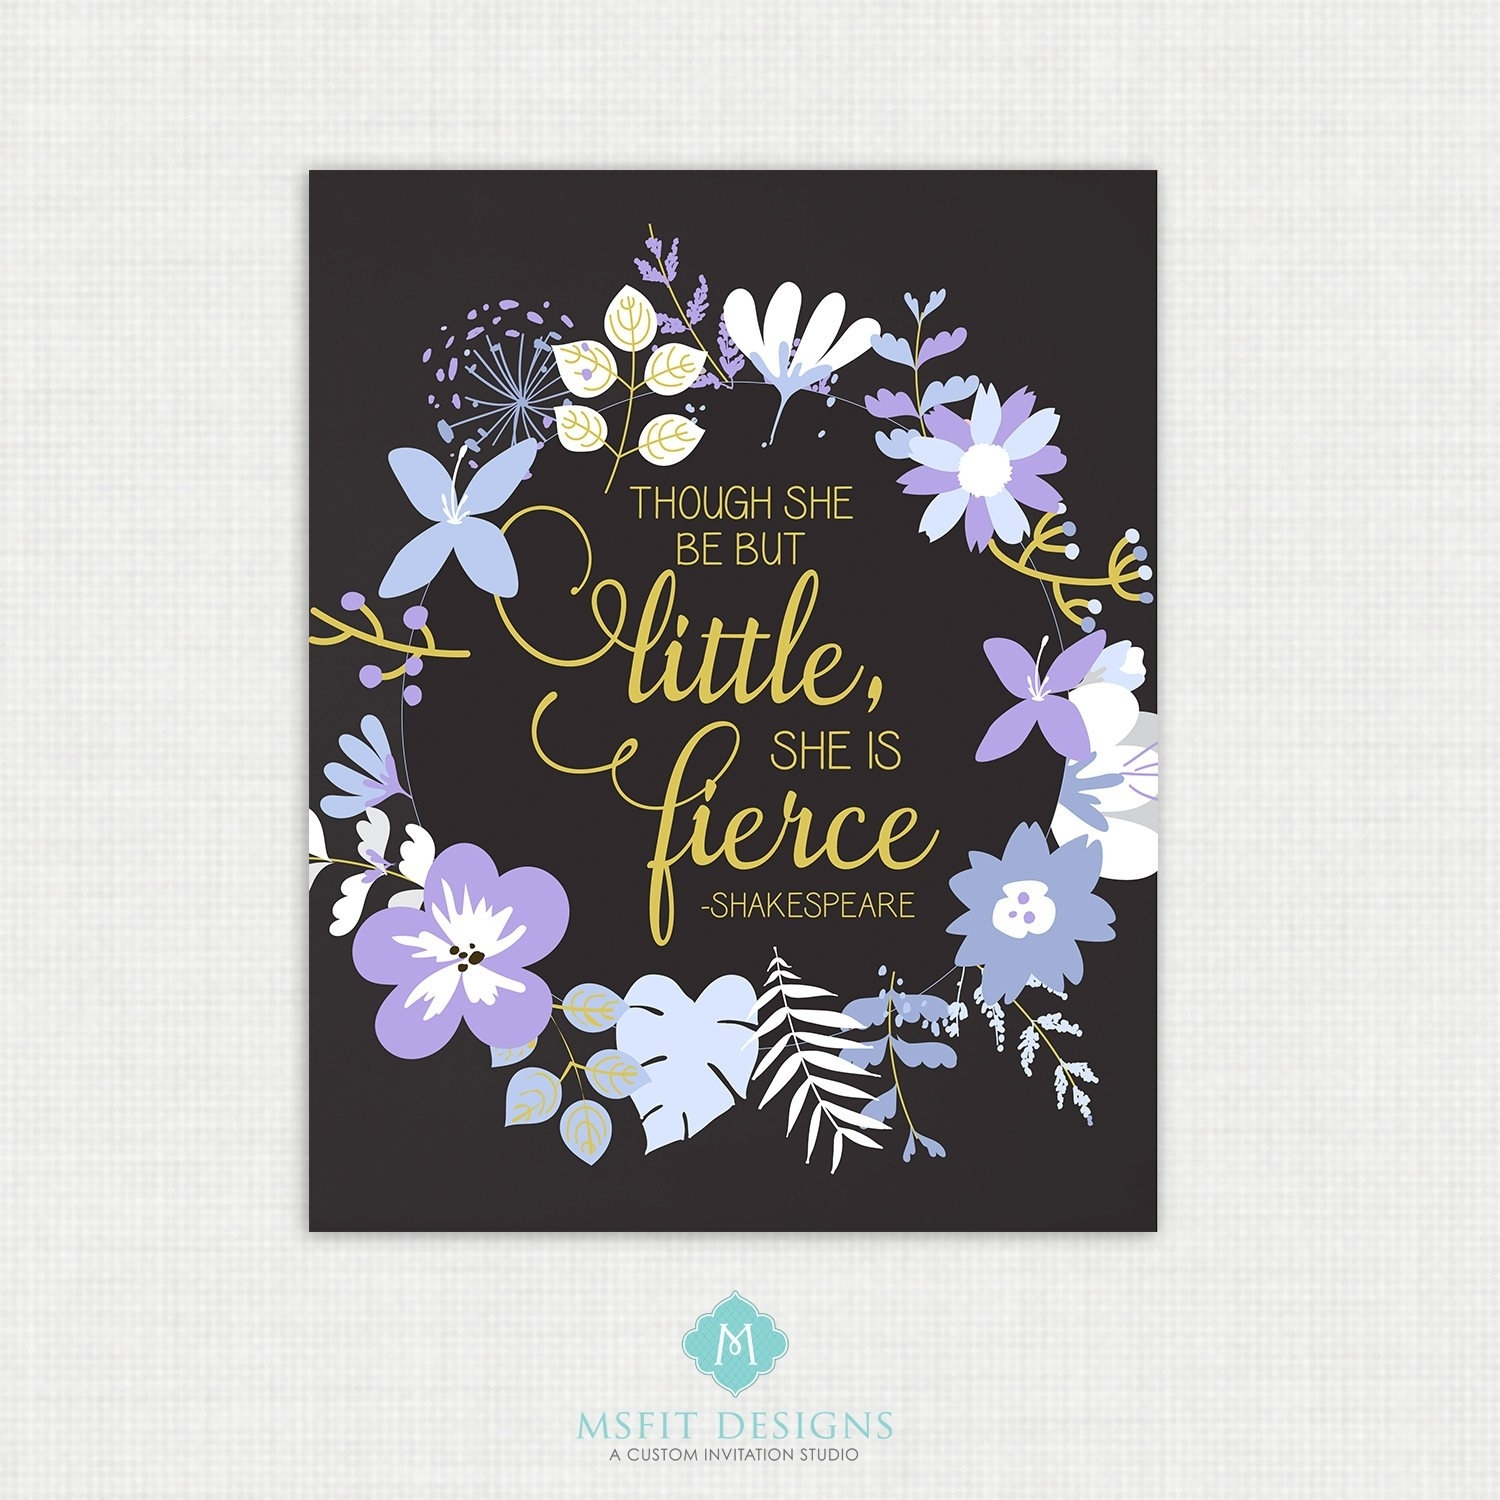 Printable Quote Though She Be But Little She Is Fierce, Wall Art Pertaining To Newest Though She Be But Little She Is Fierce Wall Art (View 6 of 20)